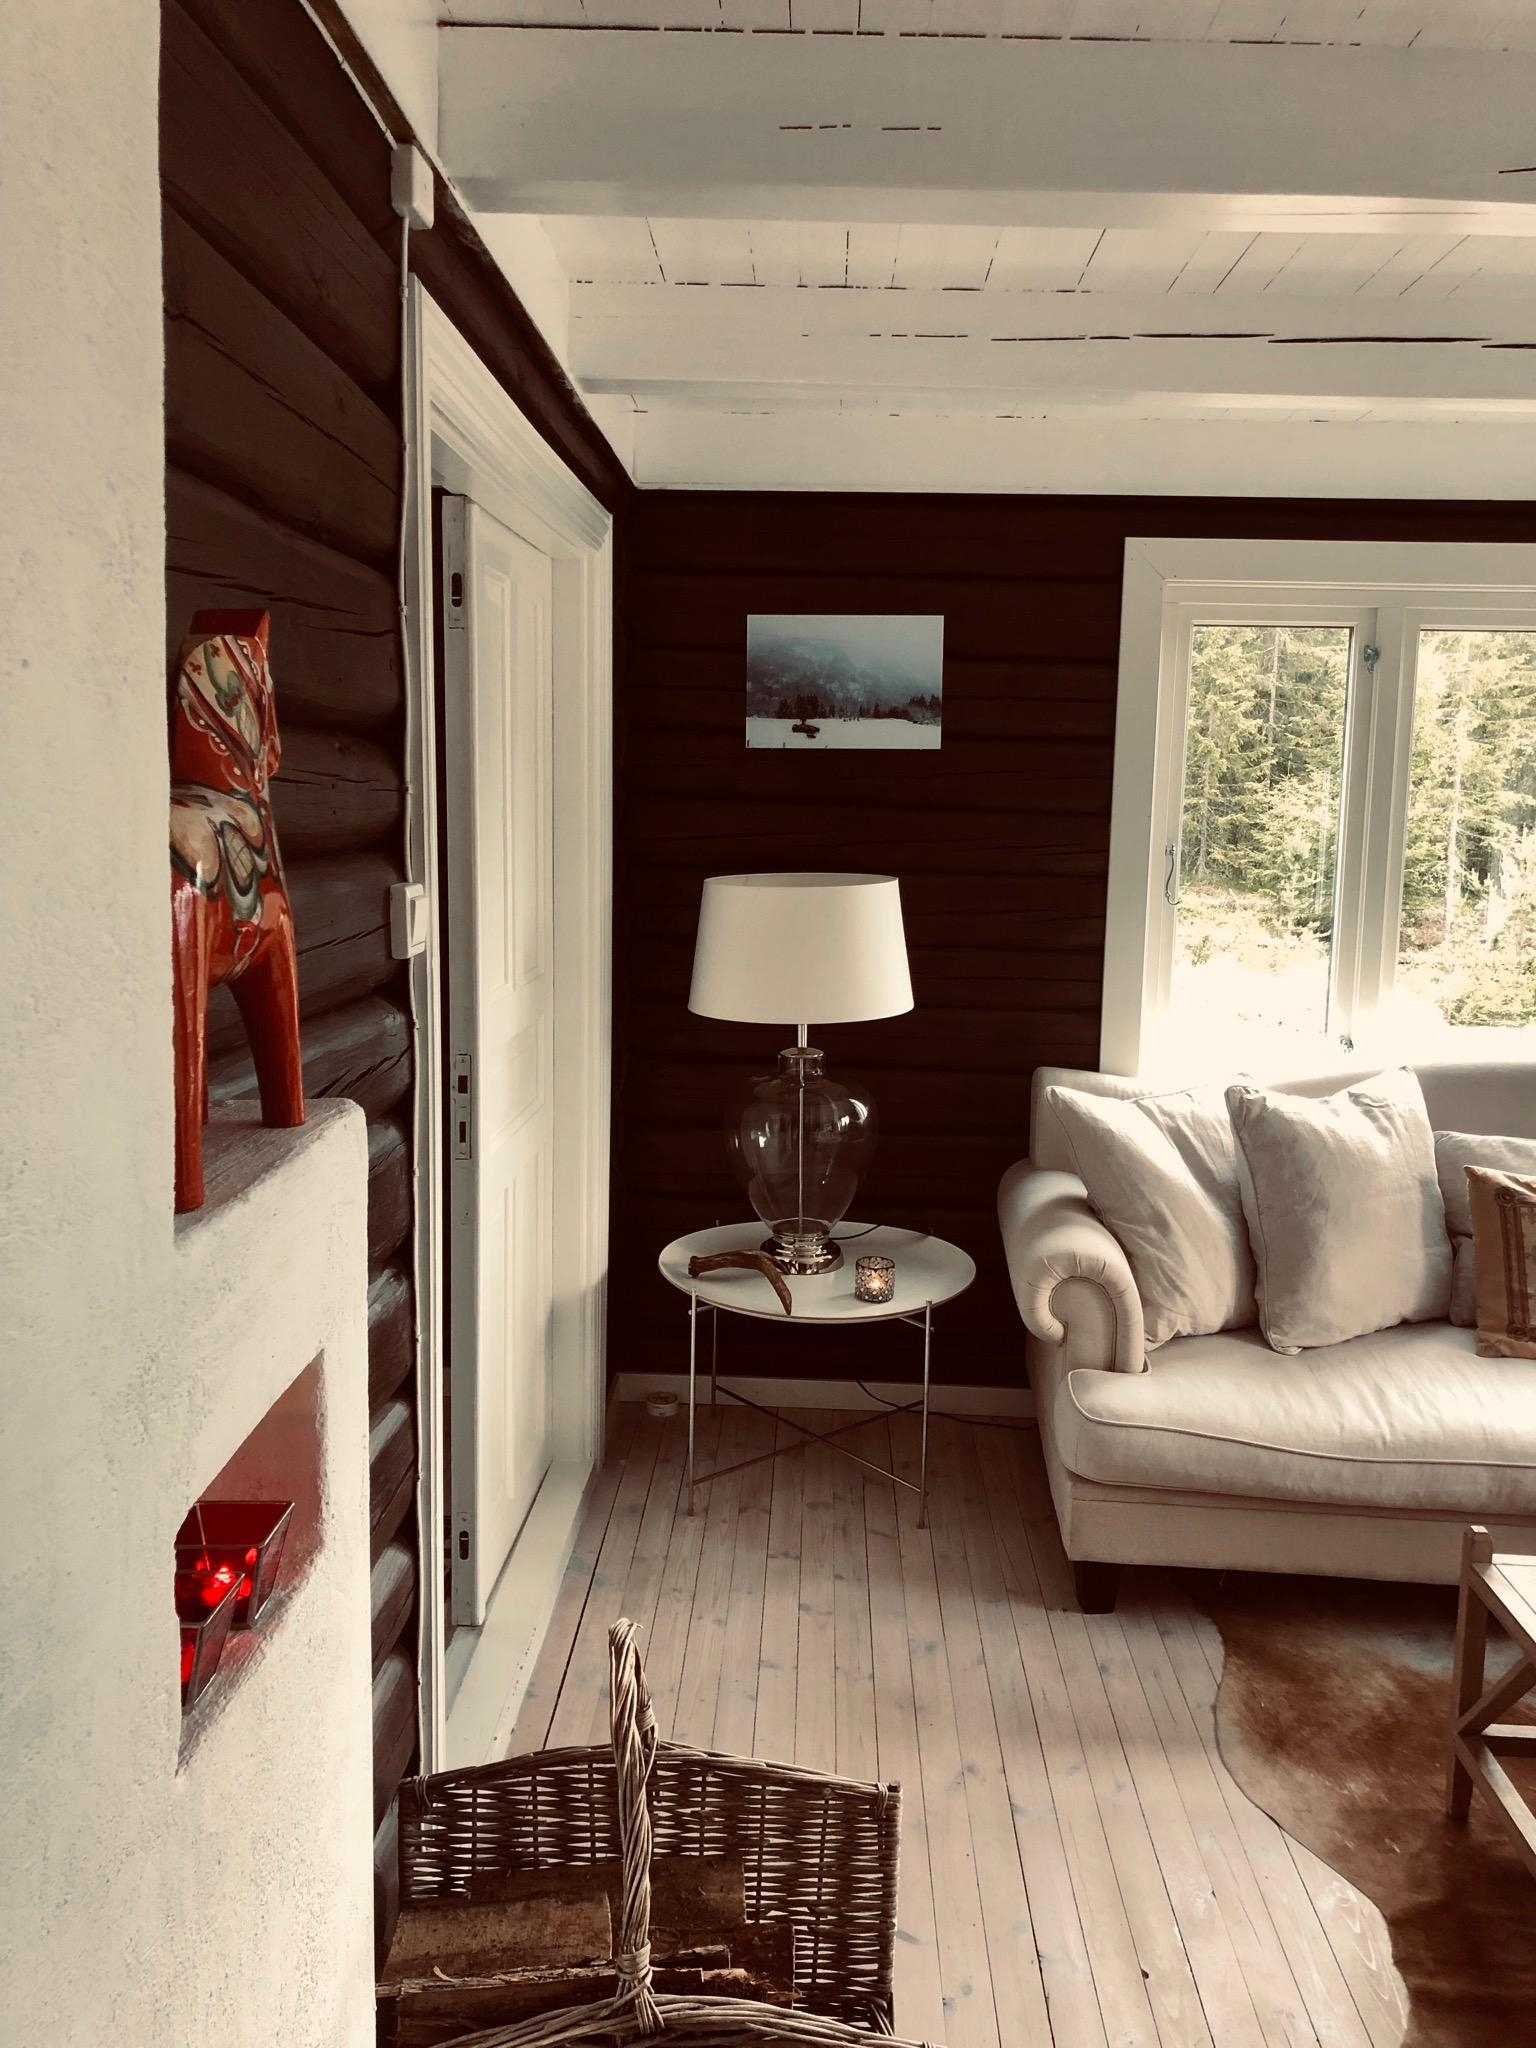 Unser Ferienhaus #Norway #Scandiliving #cottage #cottagedecoration